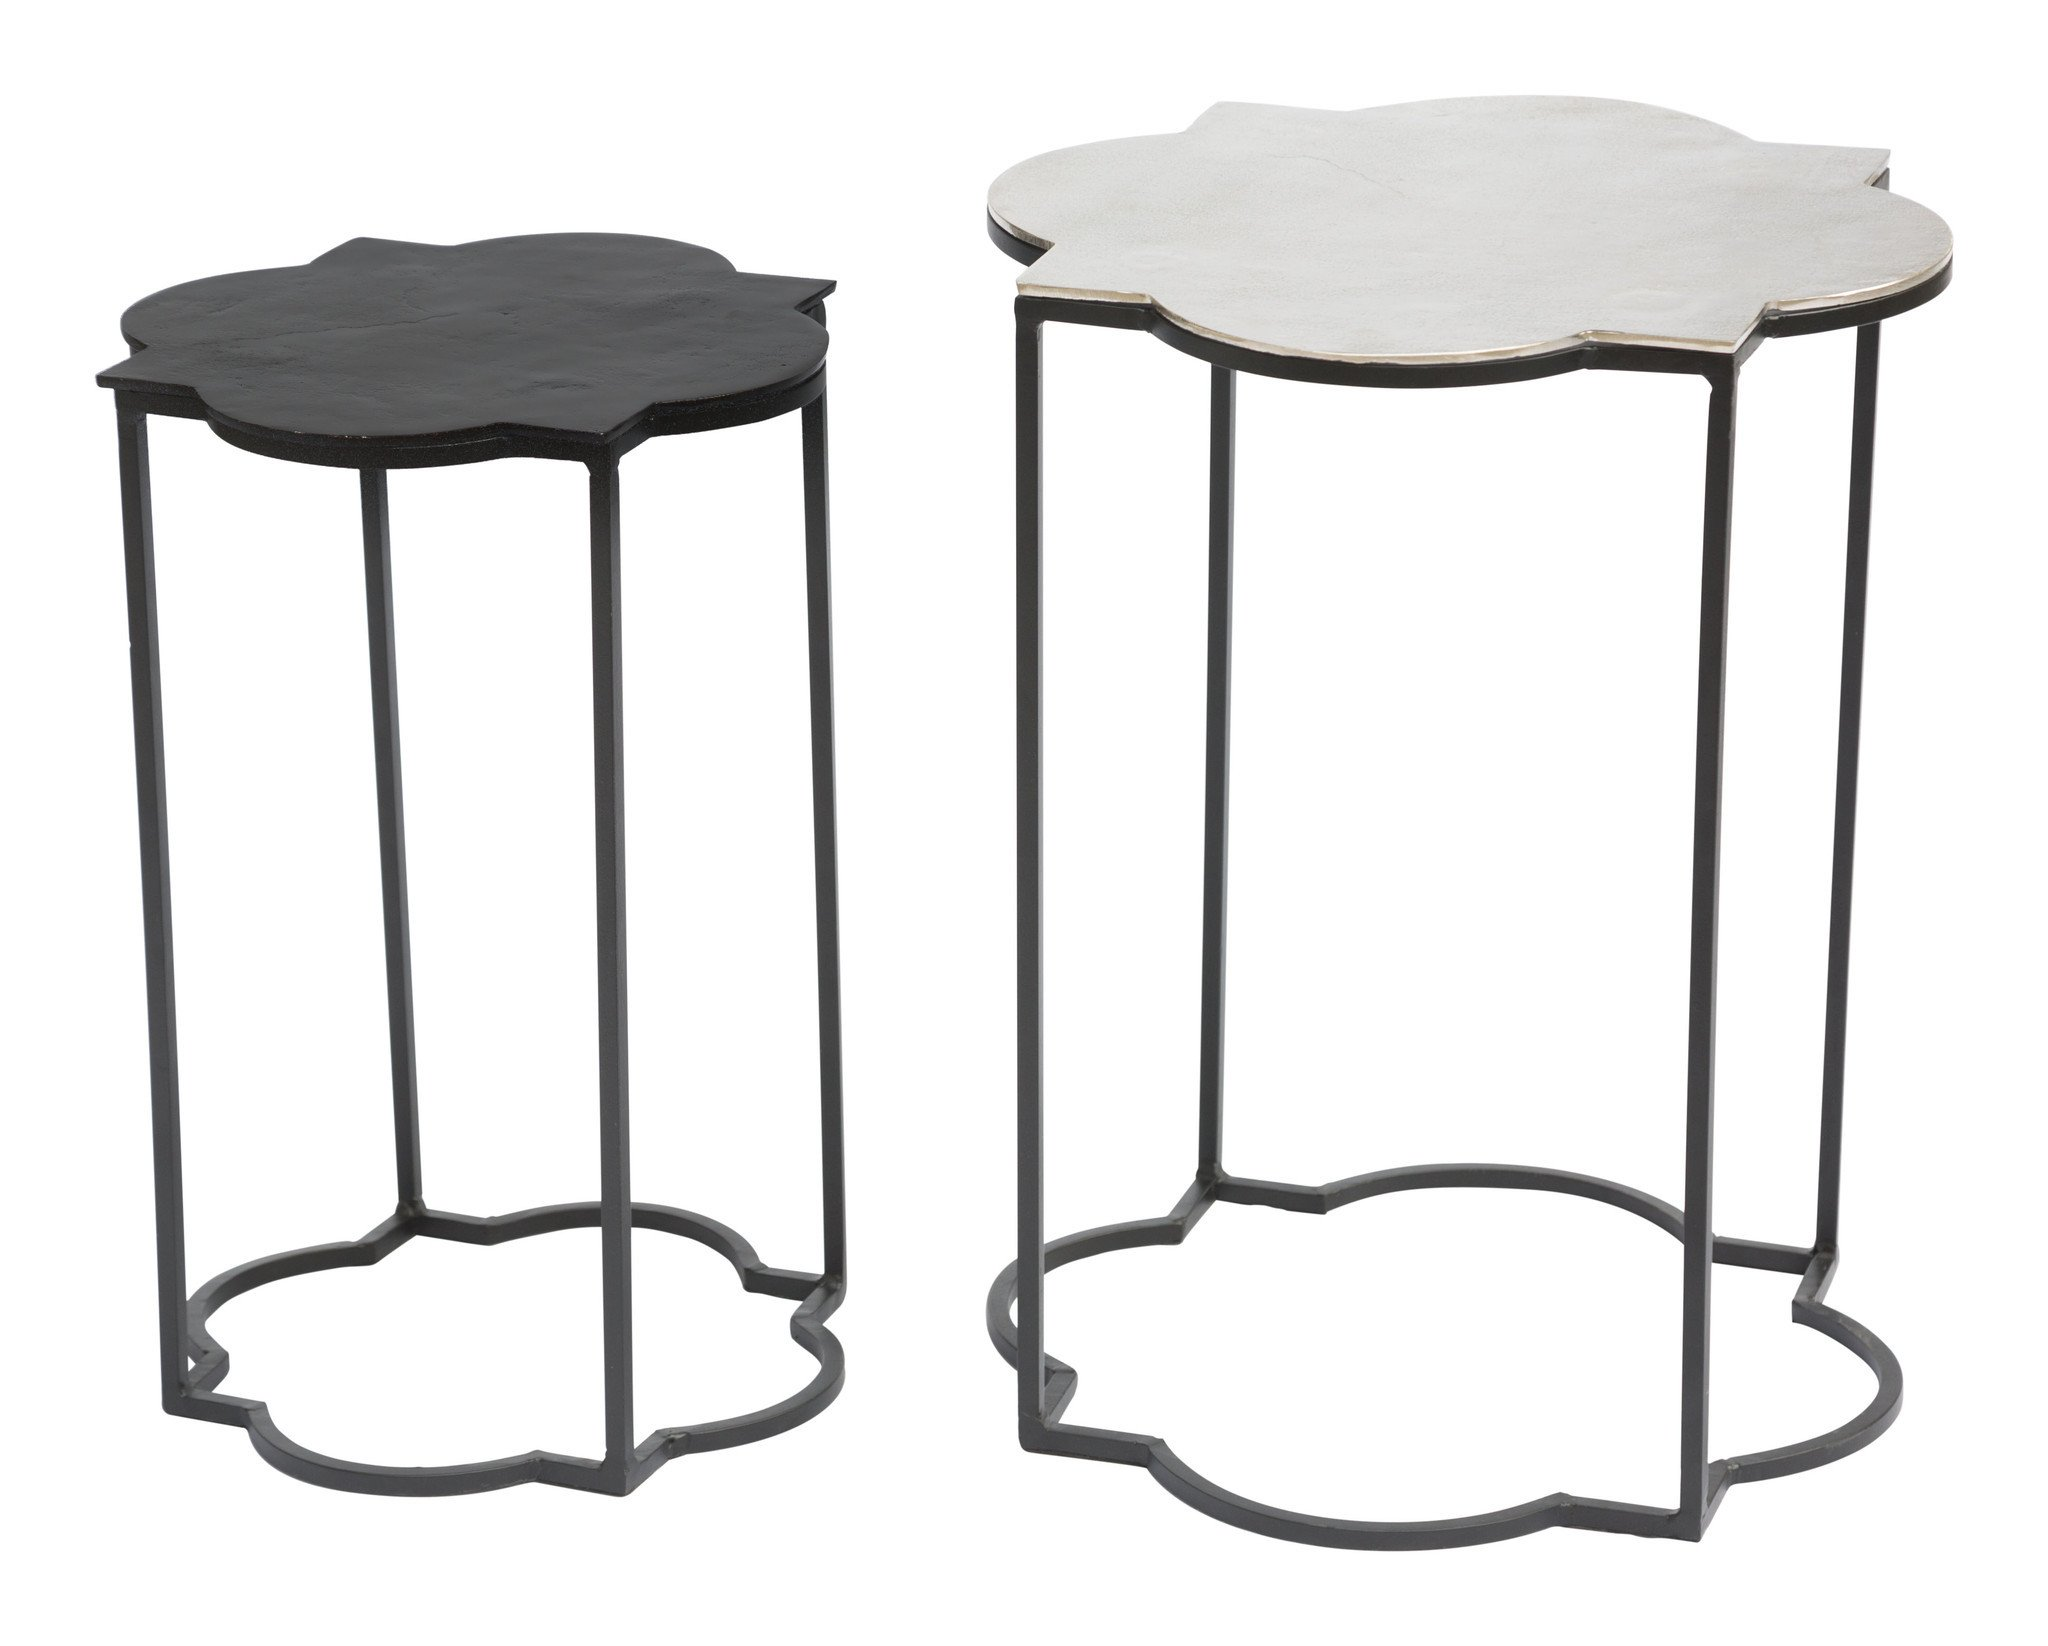 brighton accent table set black white side tables alan decor small round kids furniture storage trunk marble utensil holder heat resistant cloth sofa and end striped umbrella pier